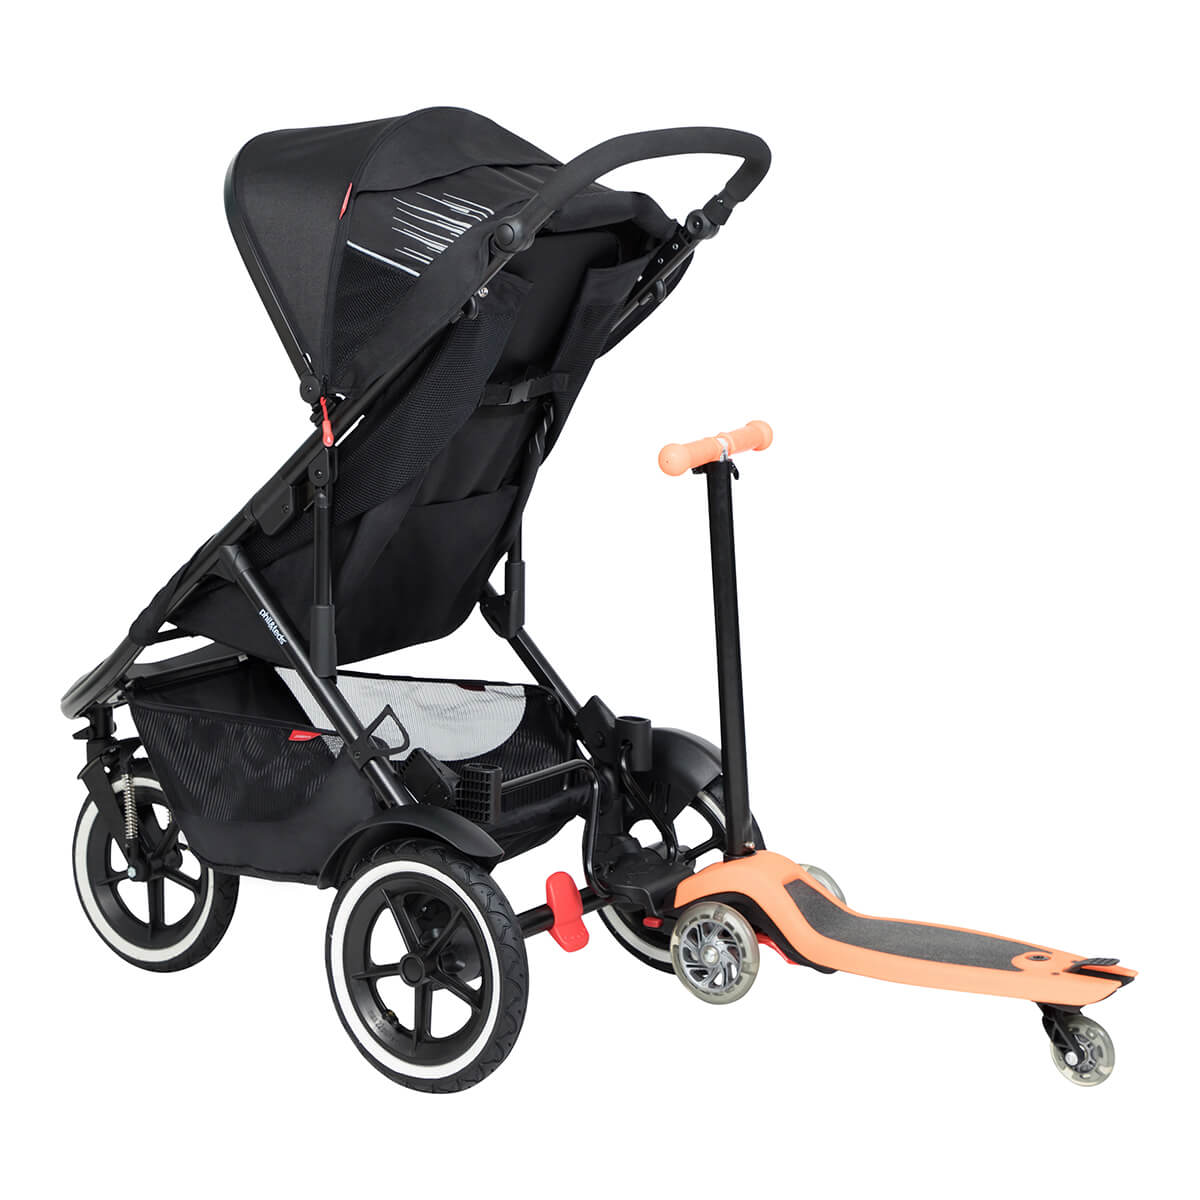 https://cdn.accentuate.io/4394651156568/19272668348504/philteds-sport-buggy-with-freerider-stroller-board-in-rear-v1626484292724.jpg?1200x1200